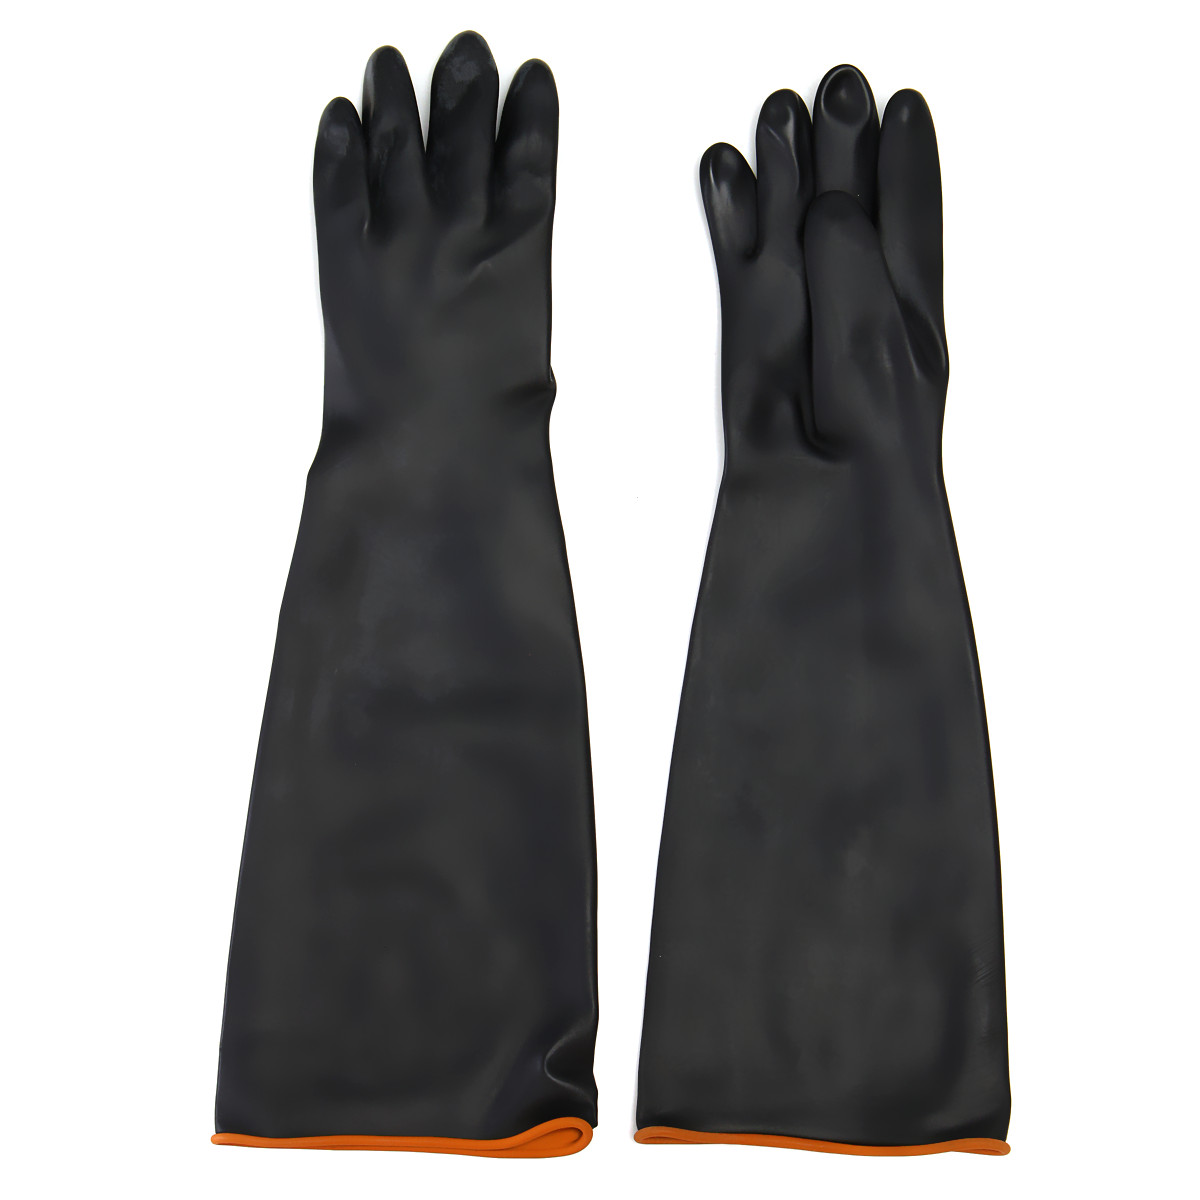 NEW Safurance Latex Industrial Rubber Gloves Acid and Alkali Resistant Anti-corrosion Black Workplace Safety Protective Glove new safurance 100x industrial disposable nitrile latex gloves powder free small medium large workplace safety